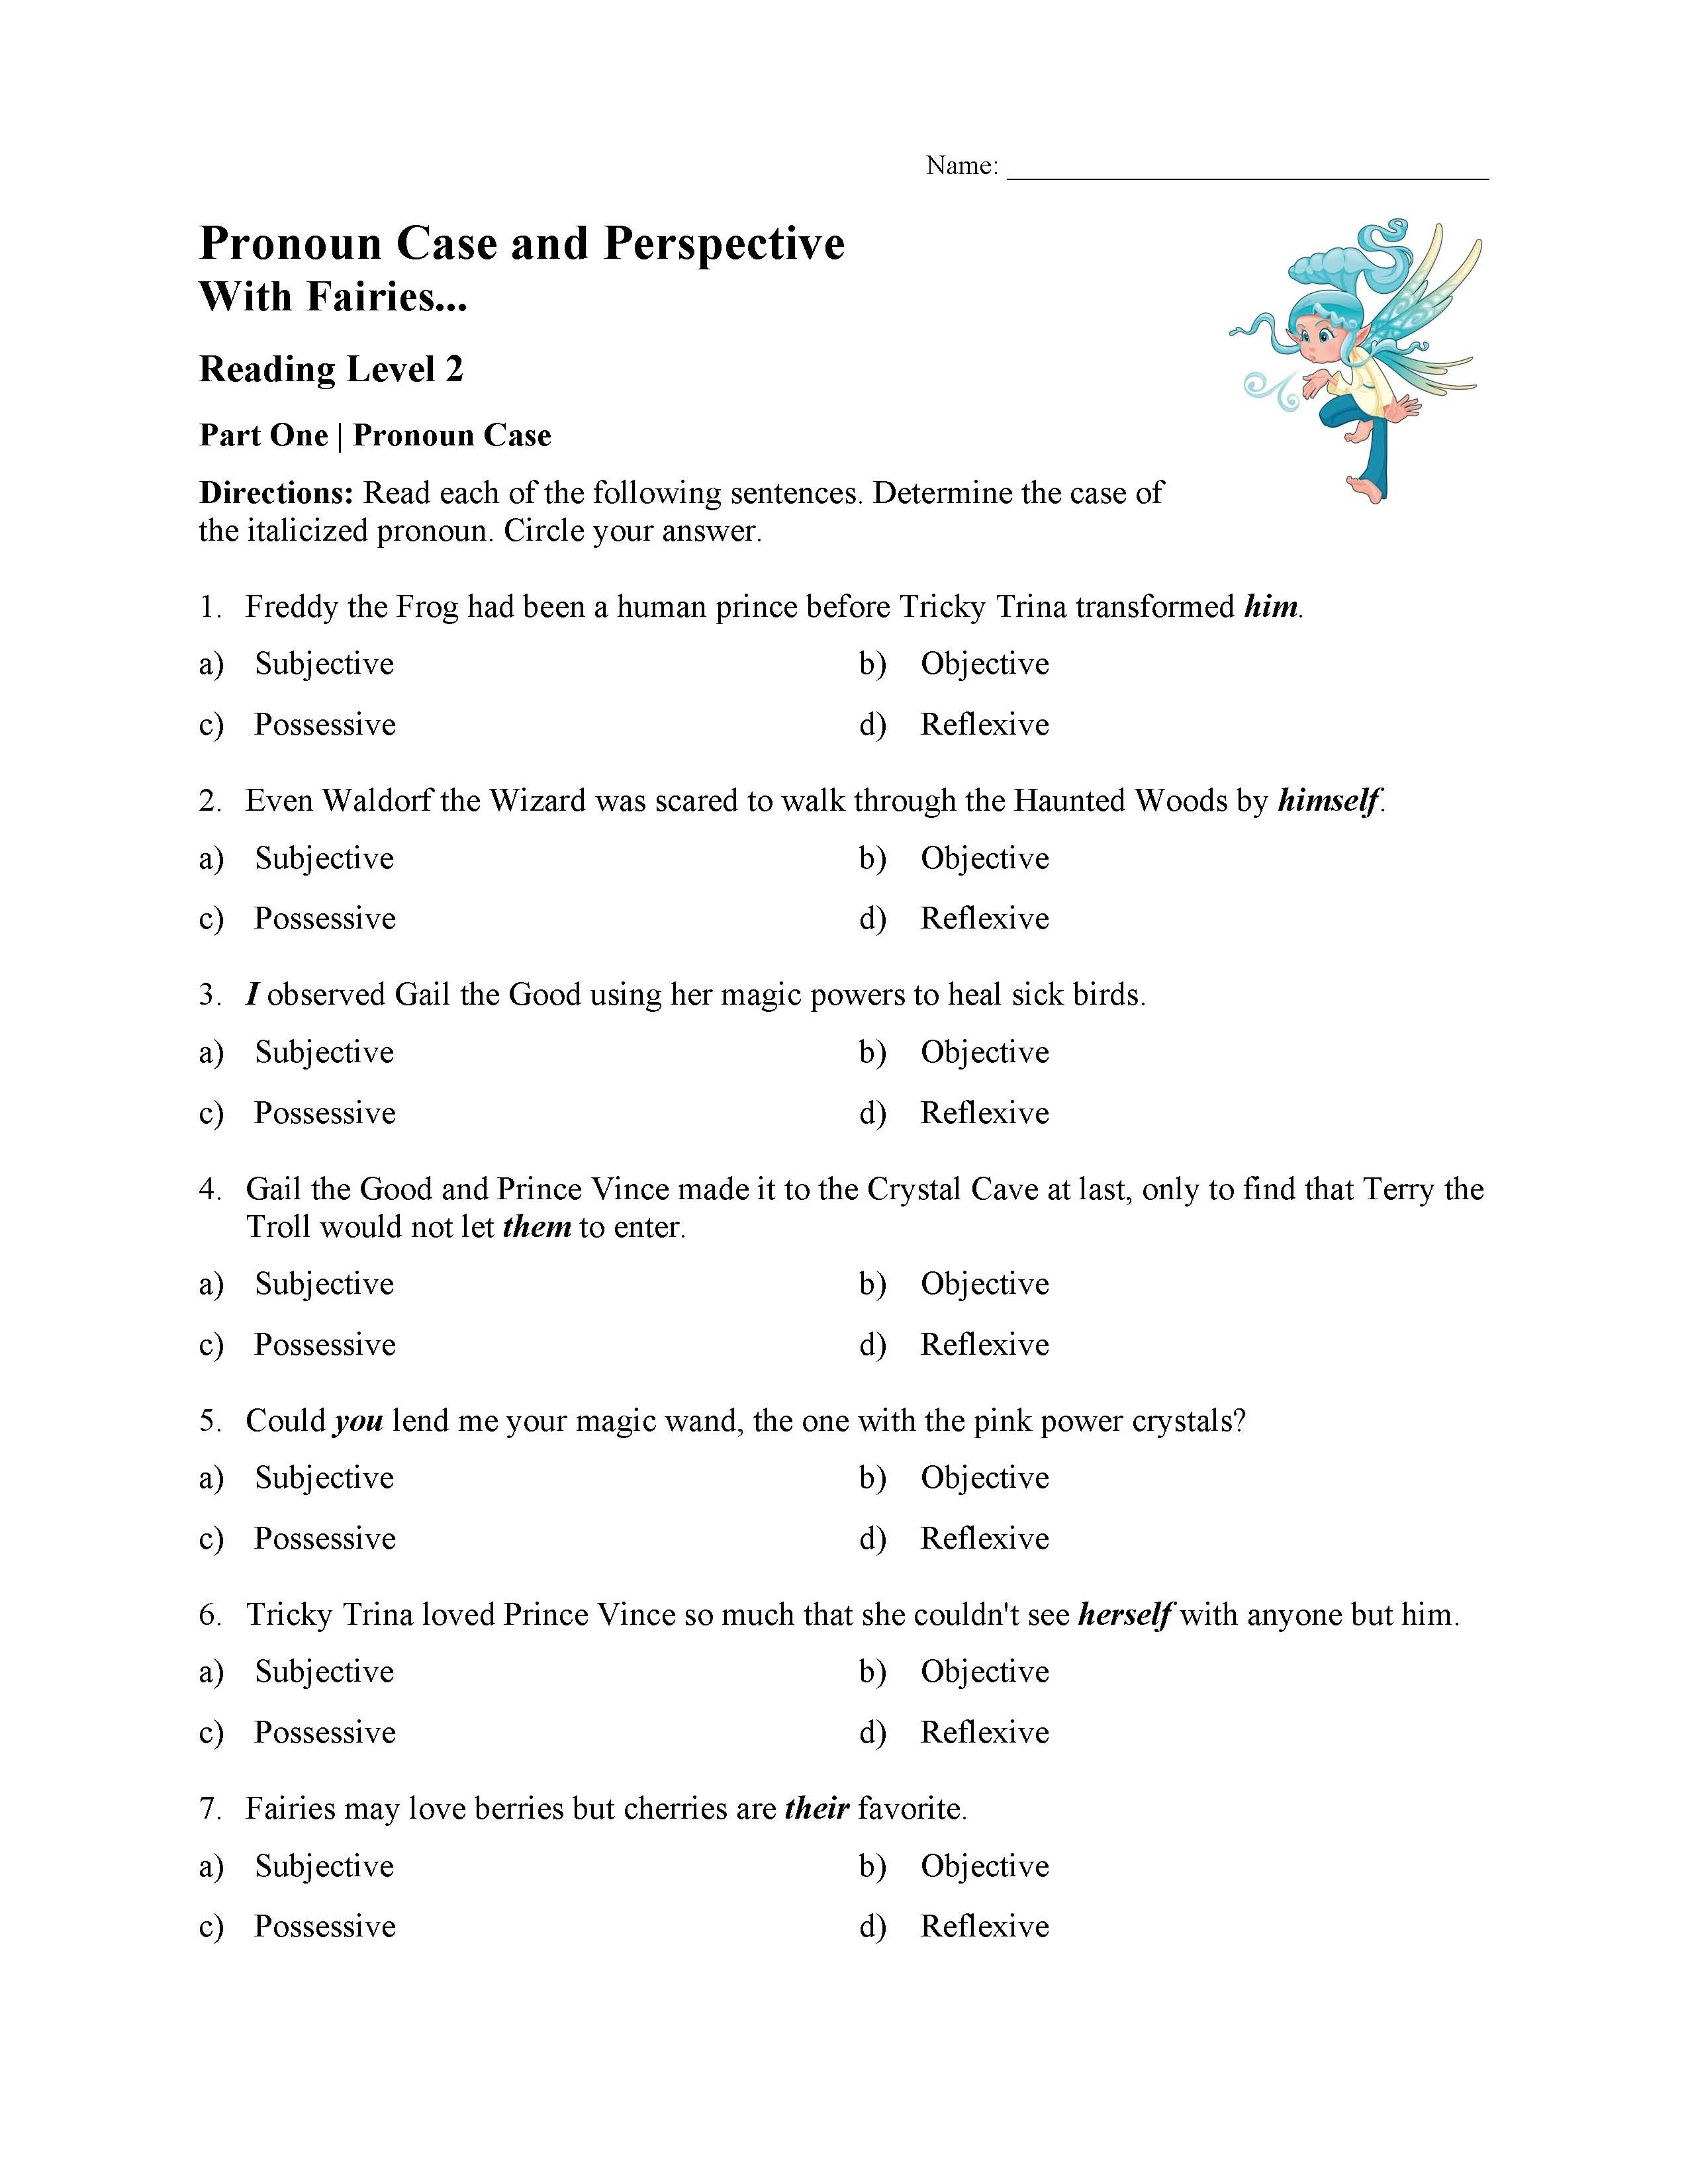 - Pronoun Case And Perspective Test - With Fairies Reading Level 2